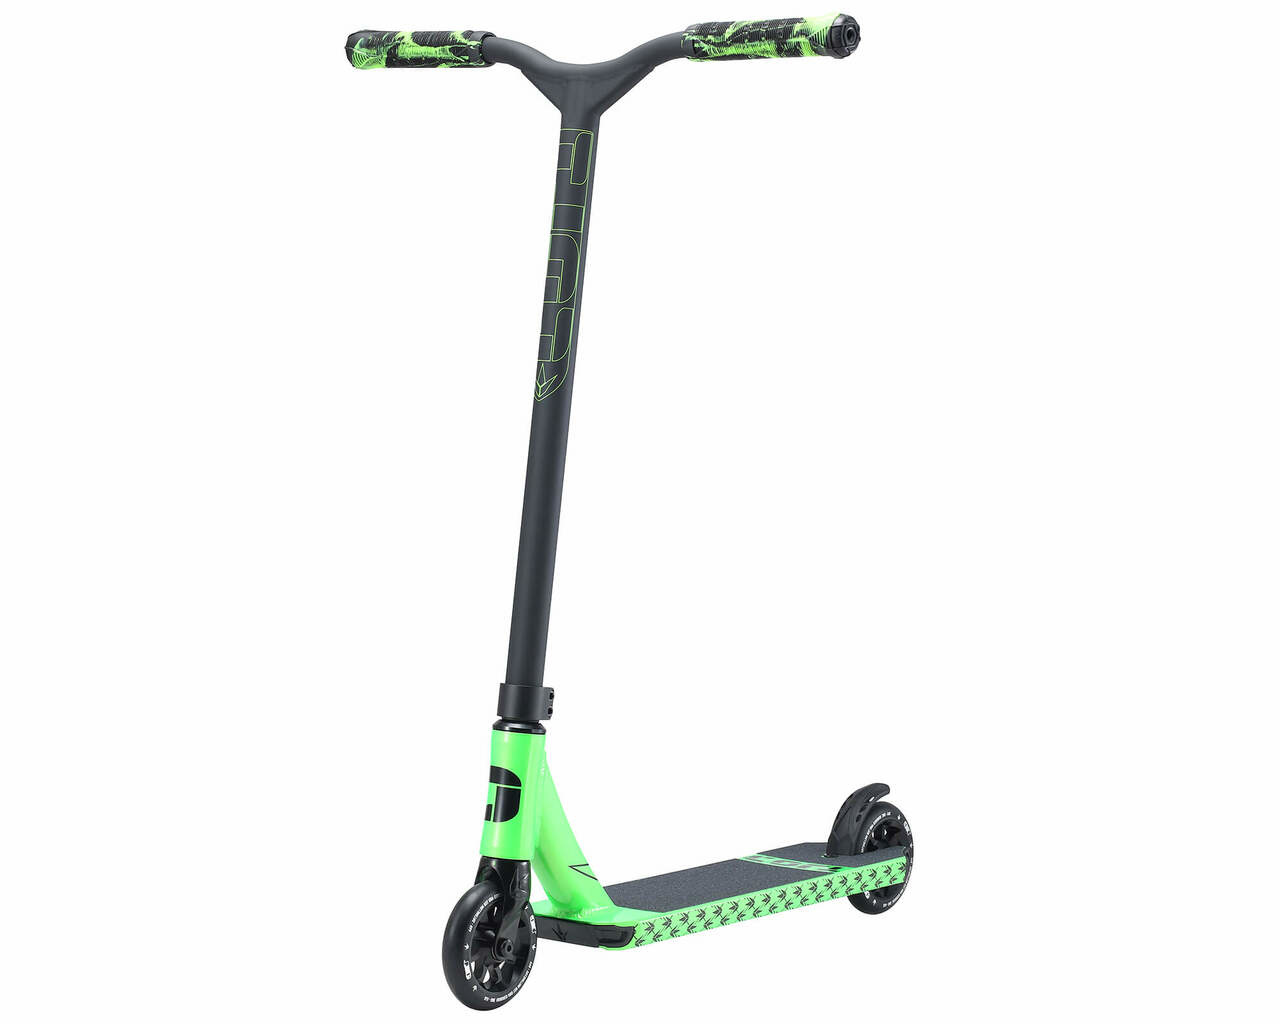 ENVY COLT SERIES 4 SCOOTER - GREEN